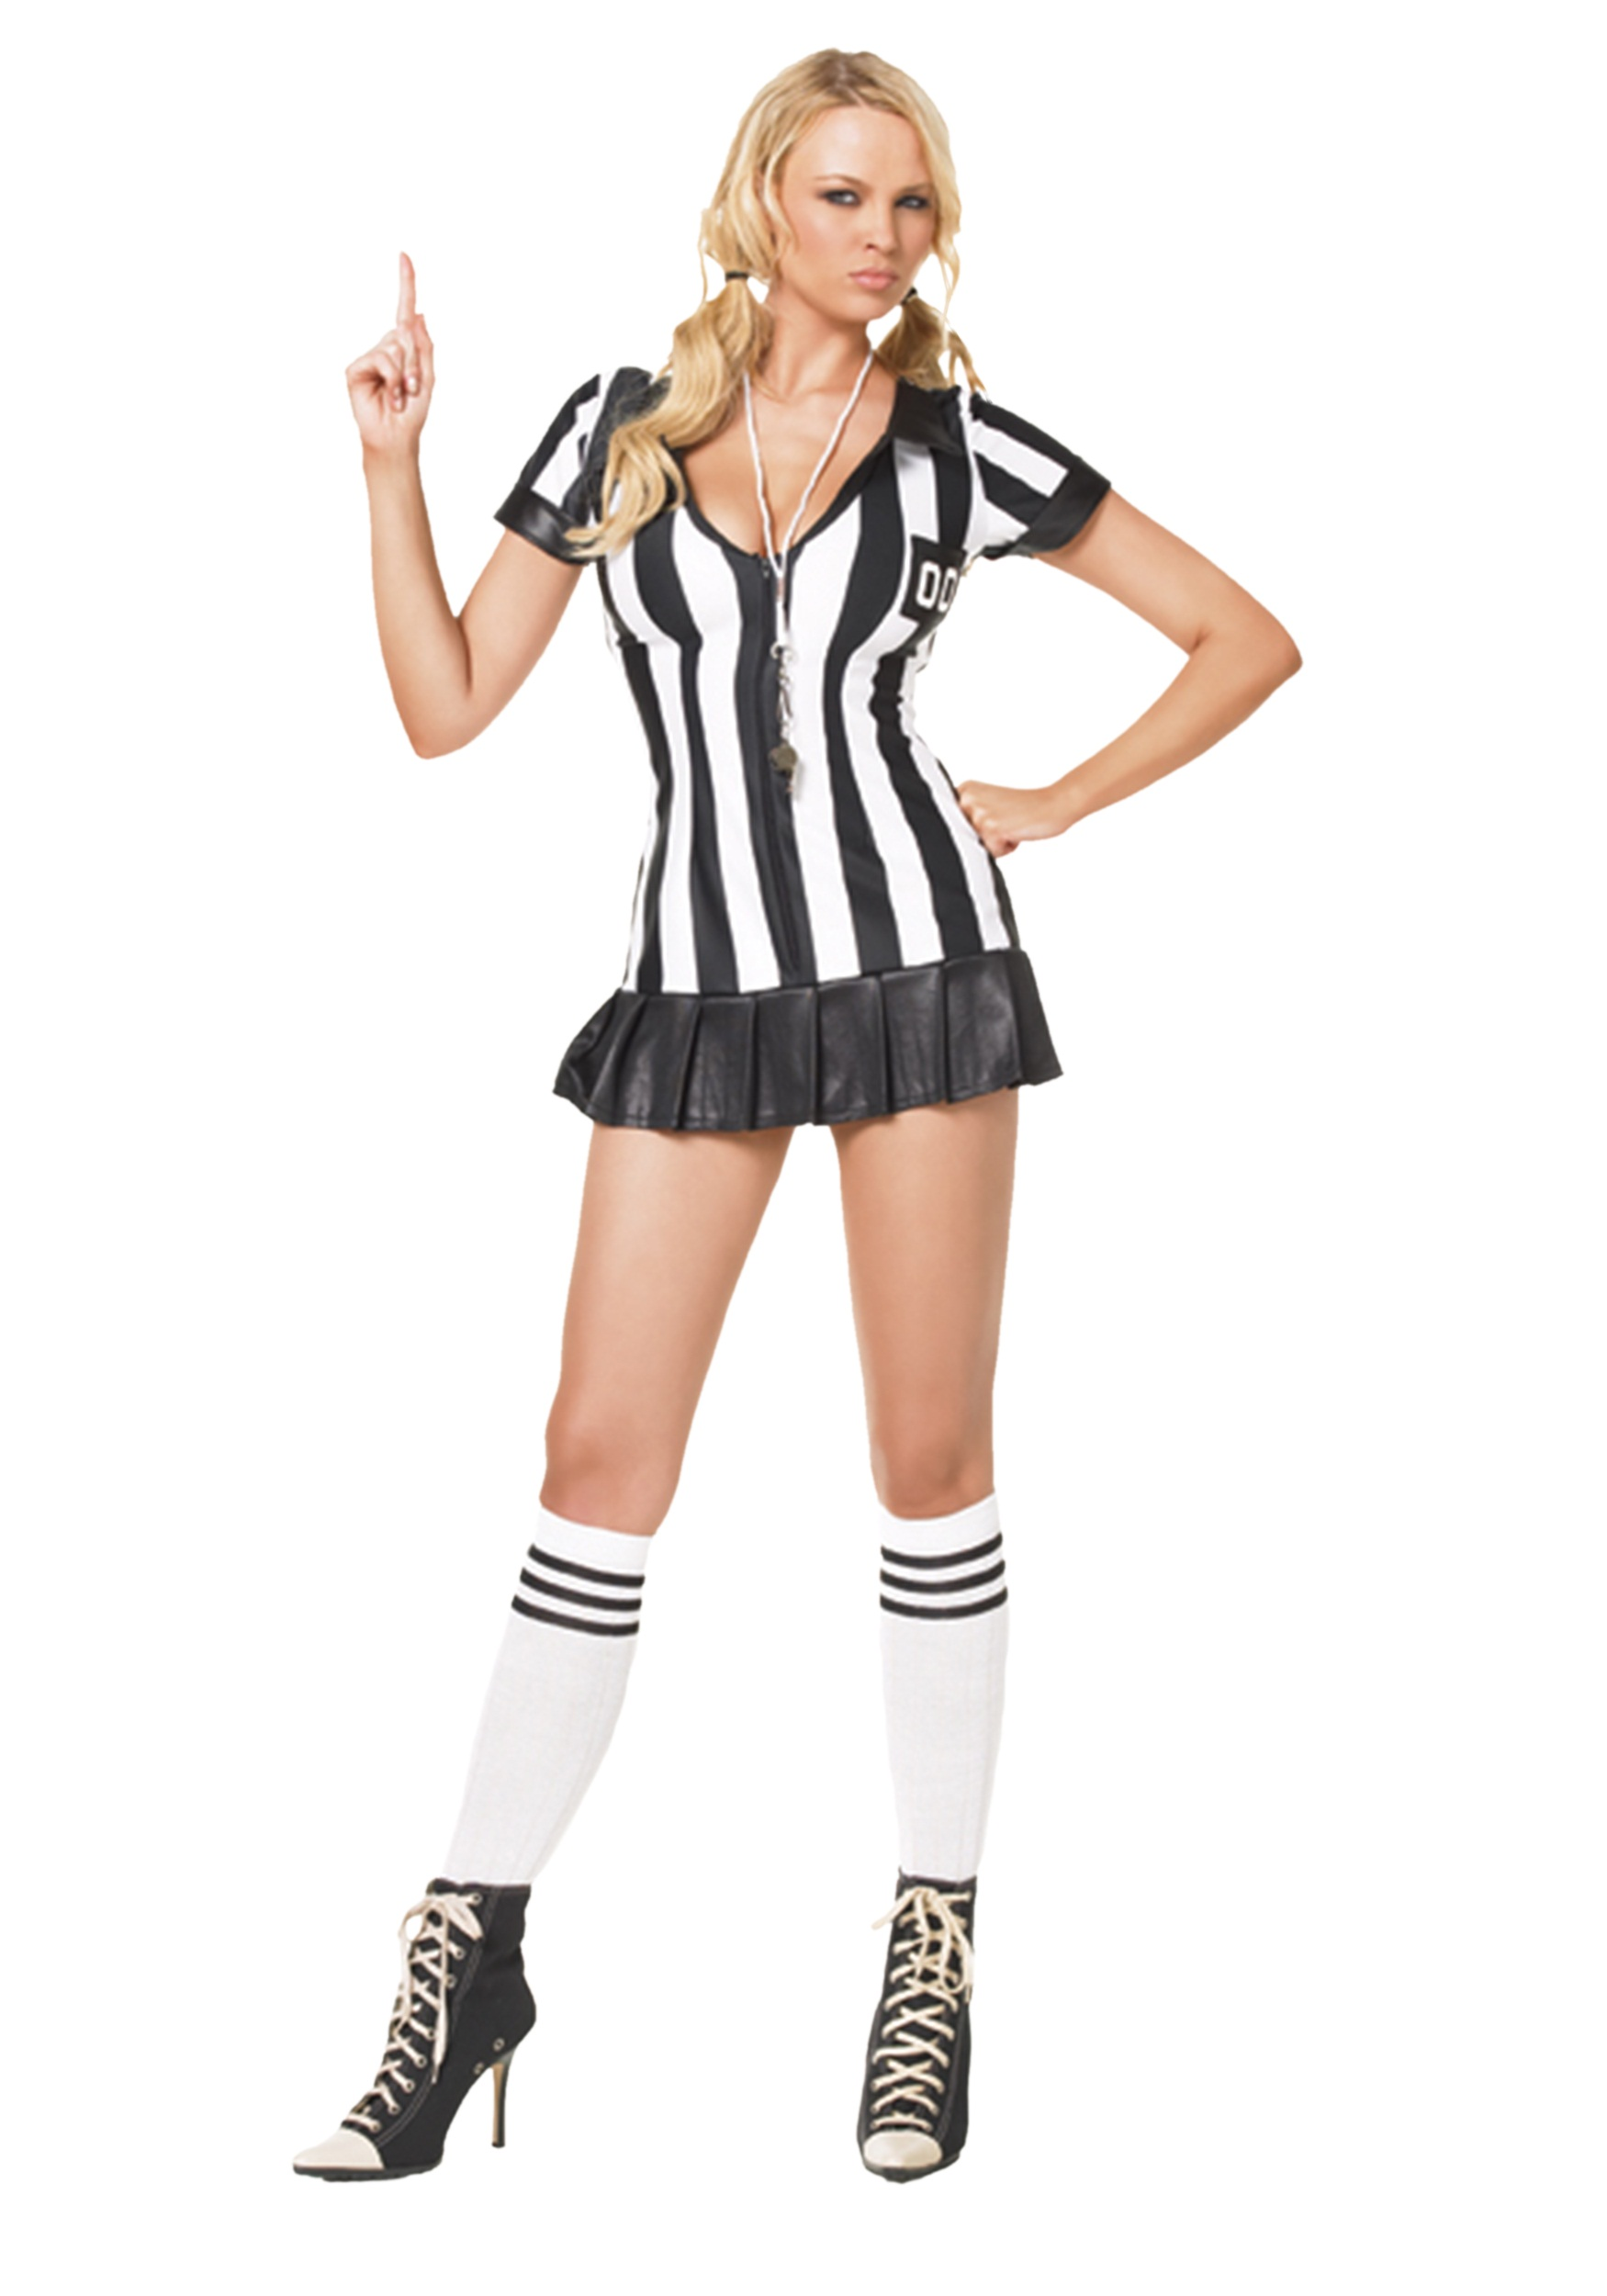 Sexy Referee Costume